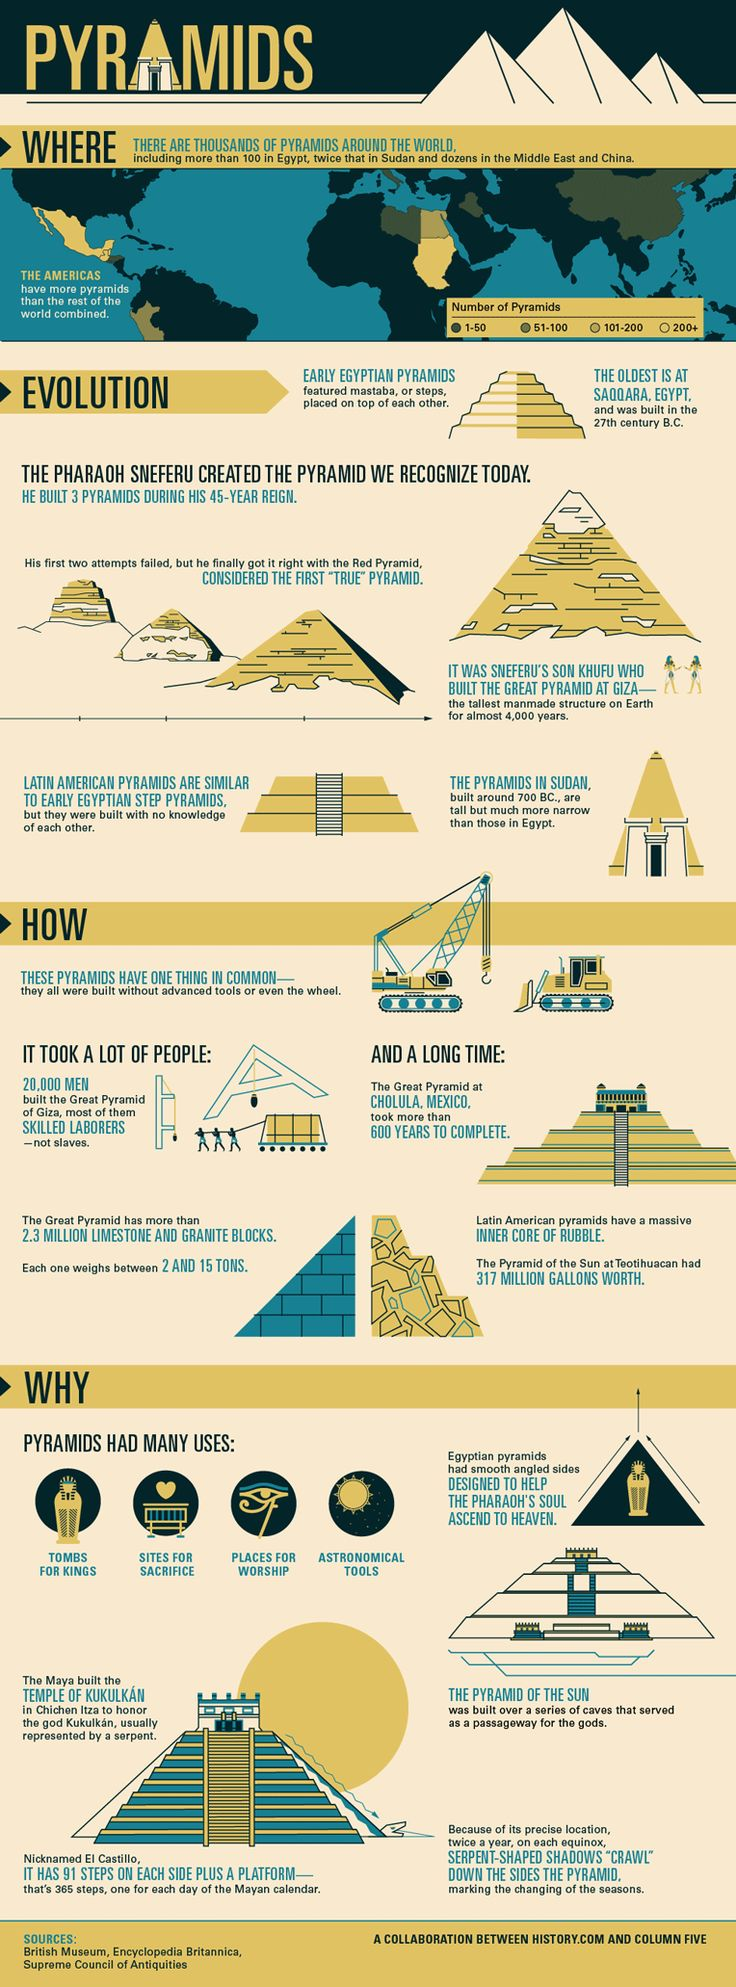 The oldest pyramid was built in the 27th century BC. MANKIND The Story of All of Us.